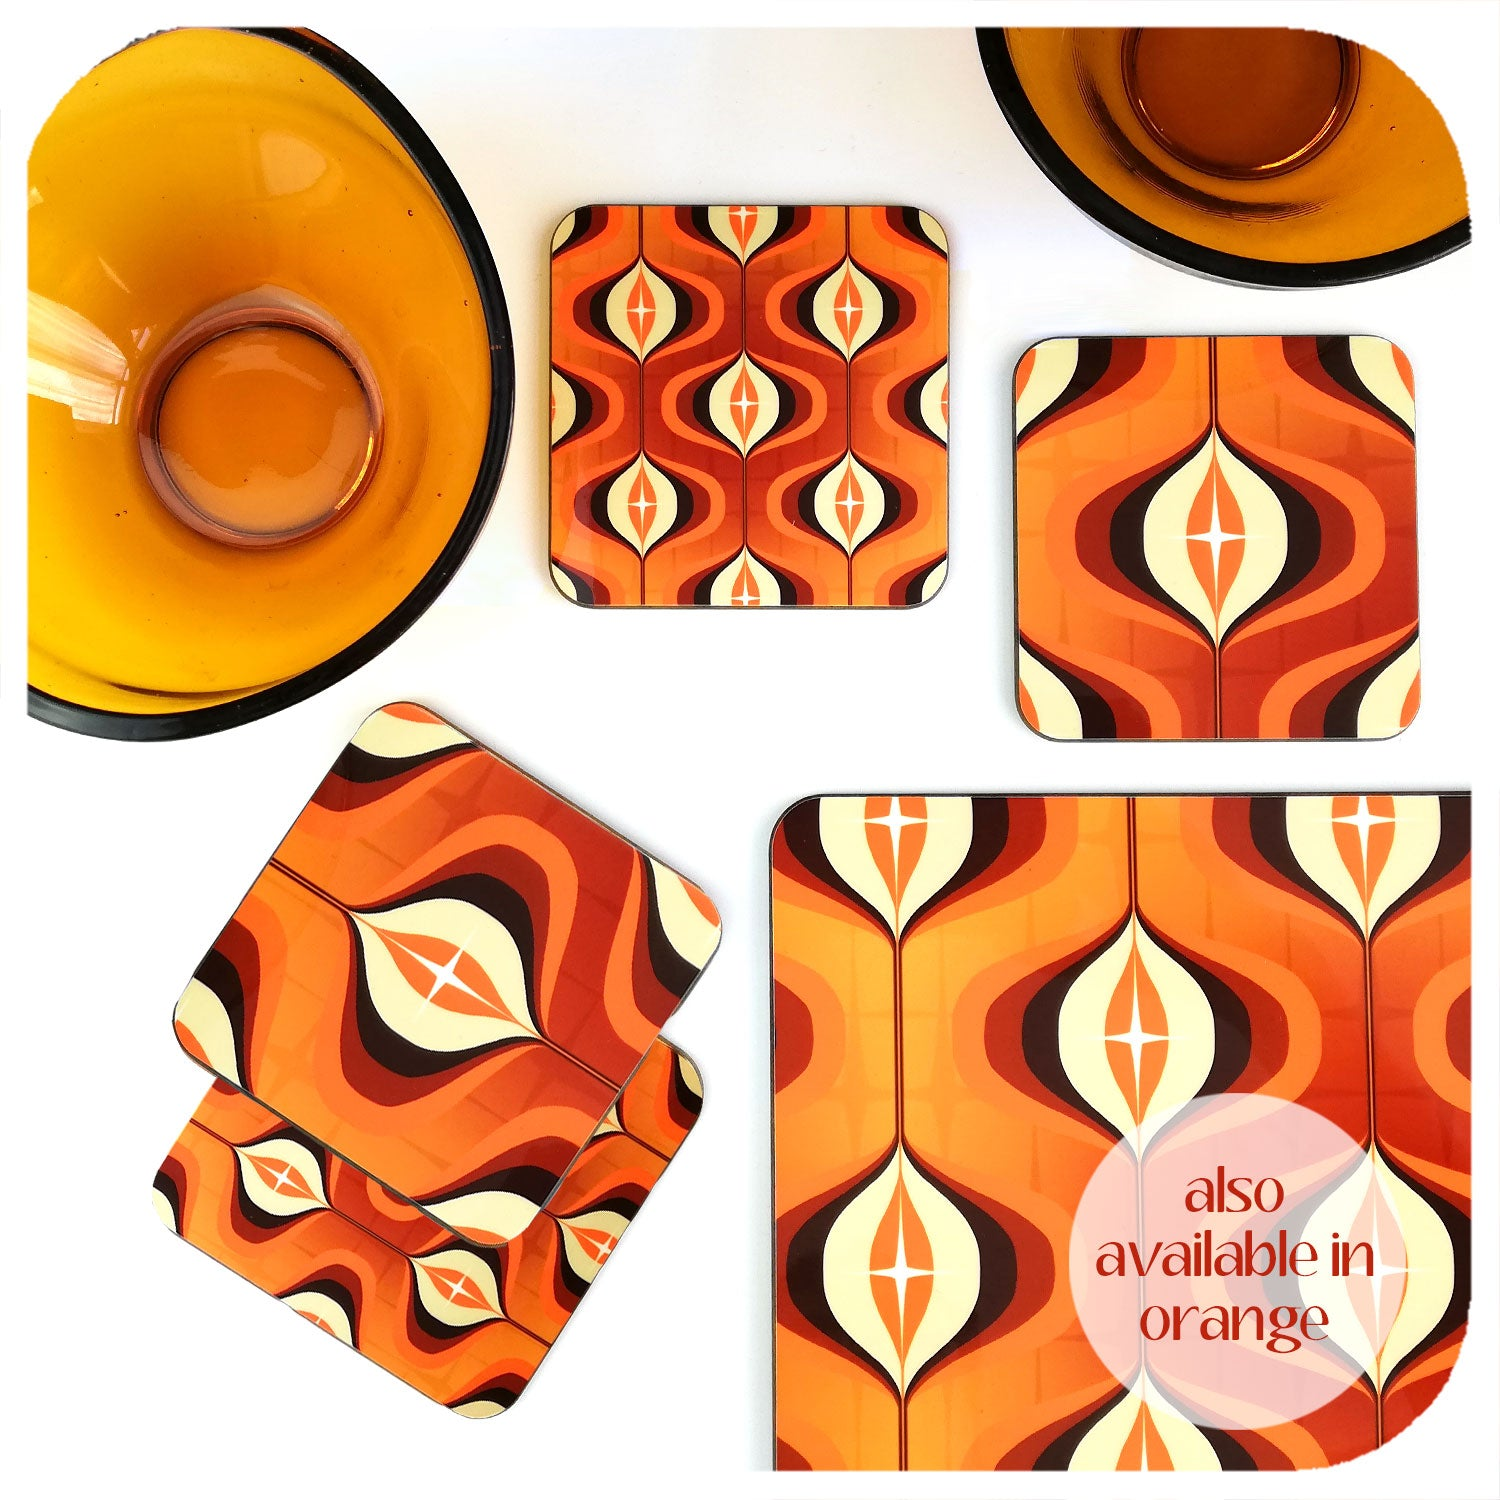 1970s Op Art Placemats & coasters in orange | The Inkabilly Emporium